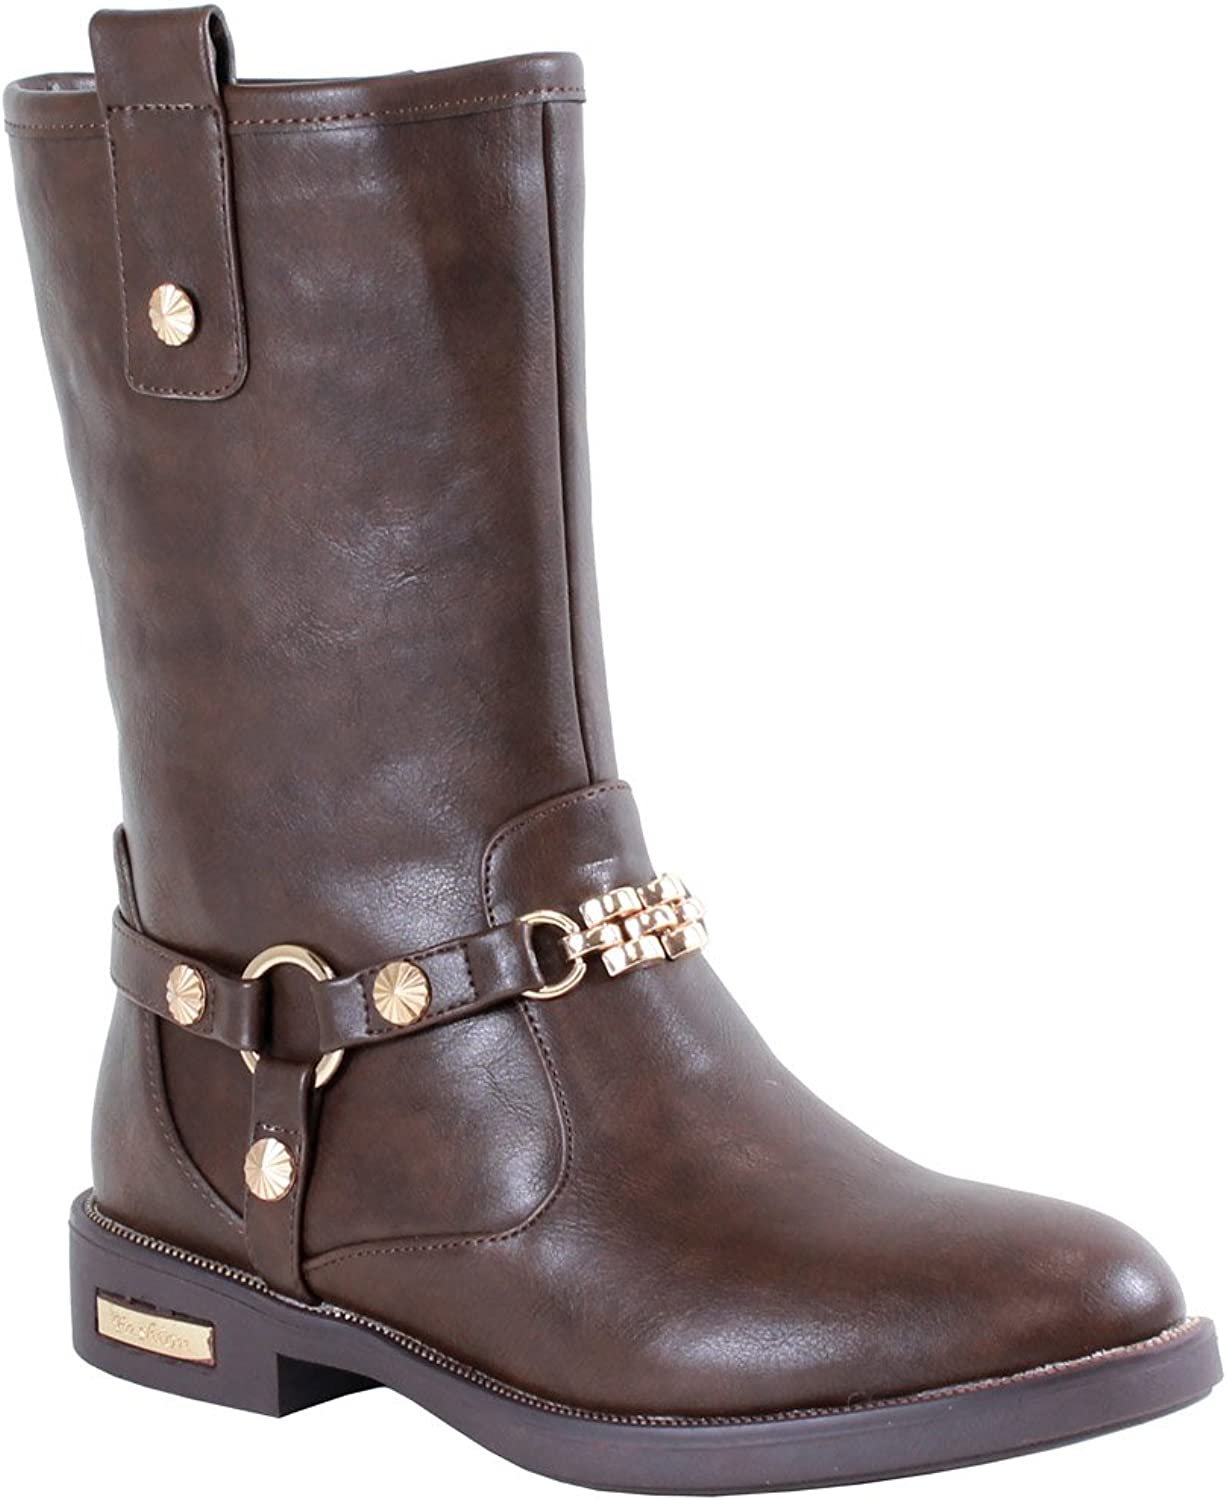 Reneeze JANET-05 Womens Fashionable Mid-Calf Western Boots with Metal Studs and Chain - Brown